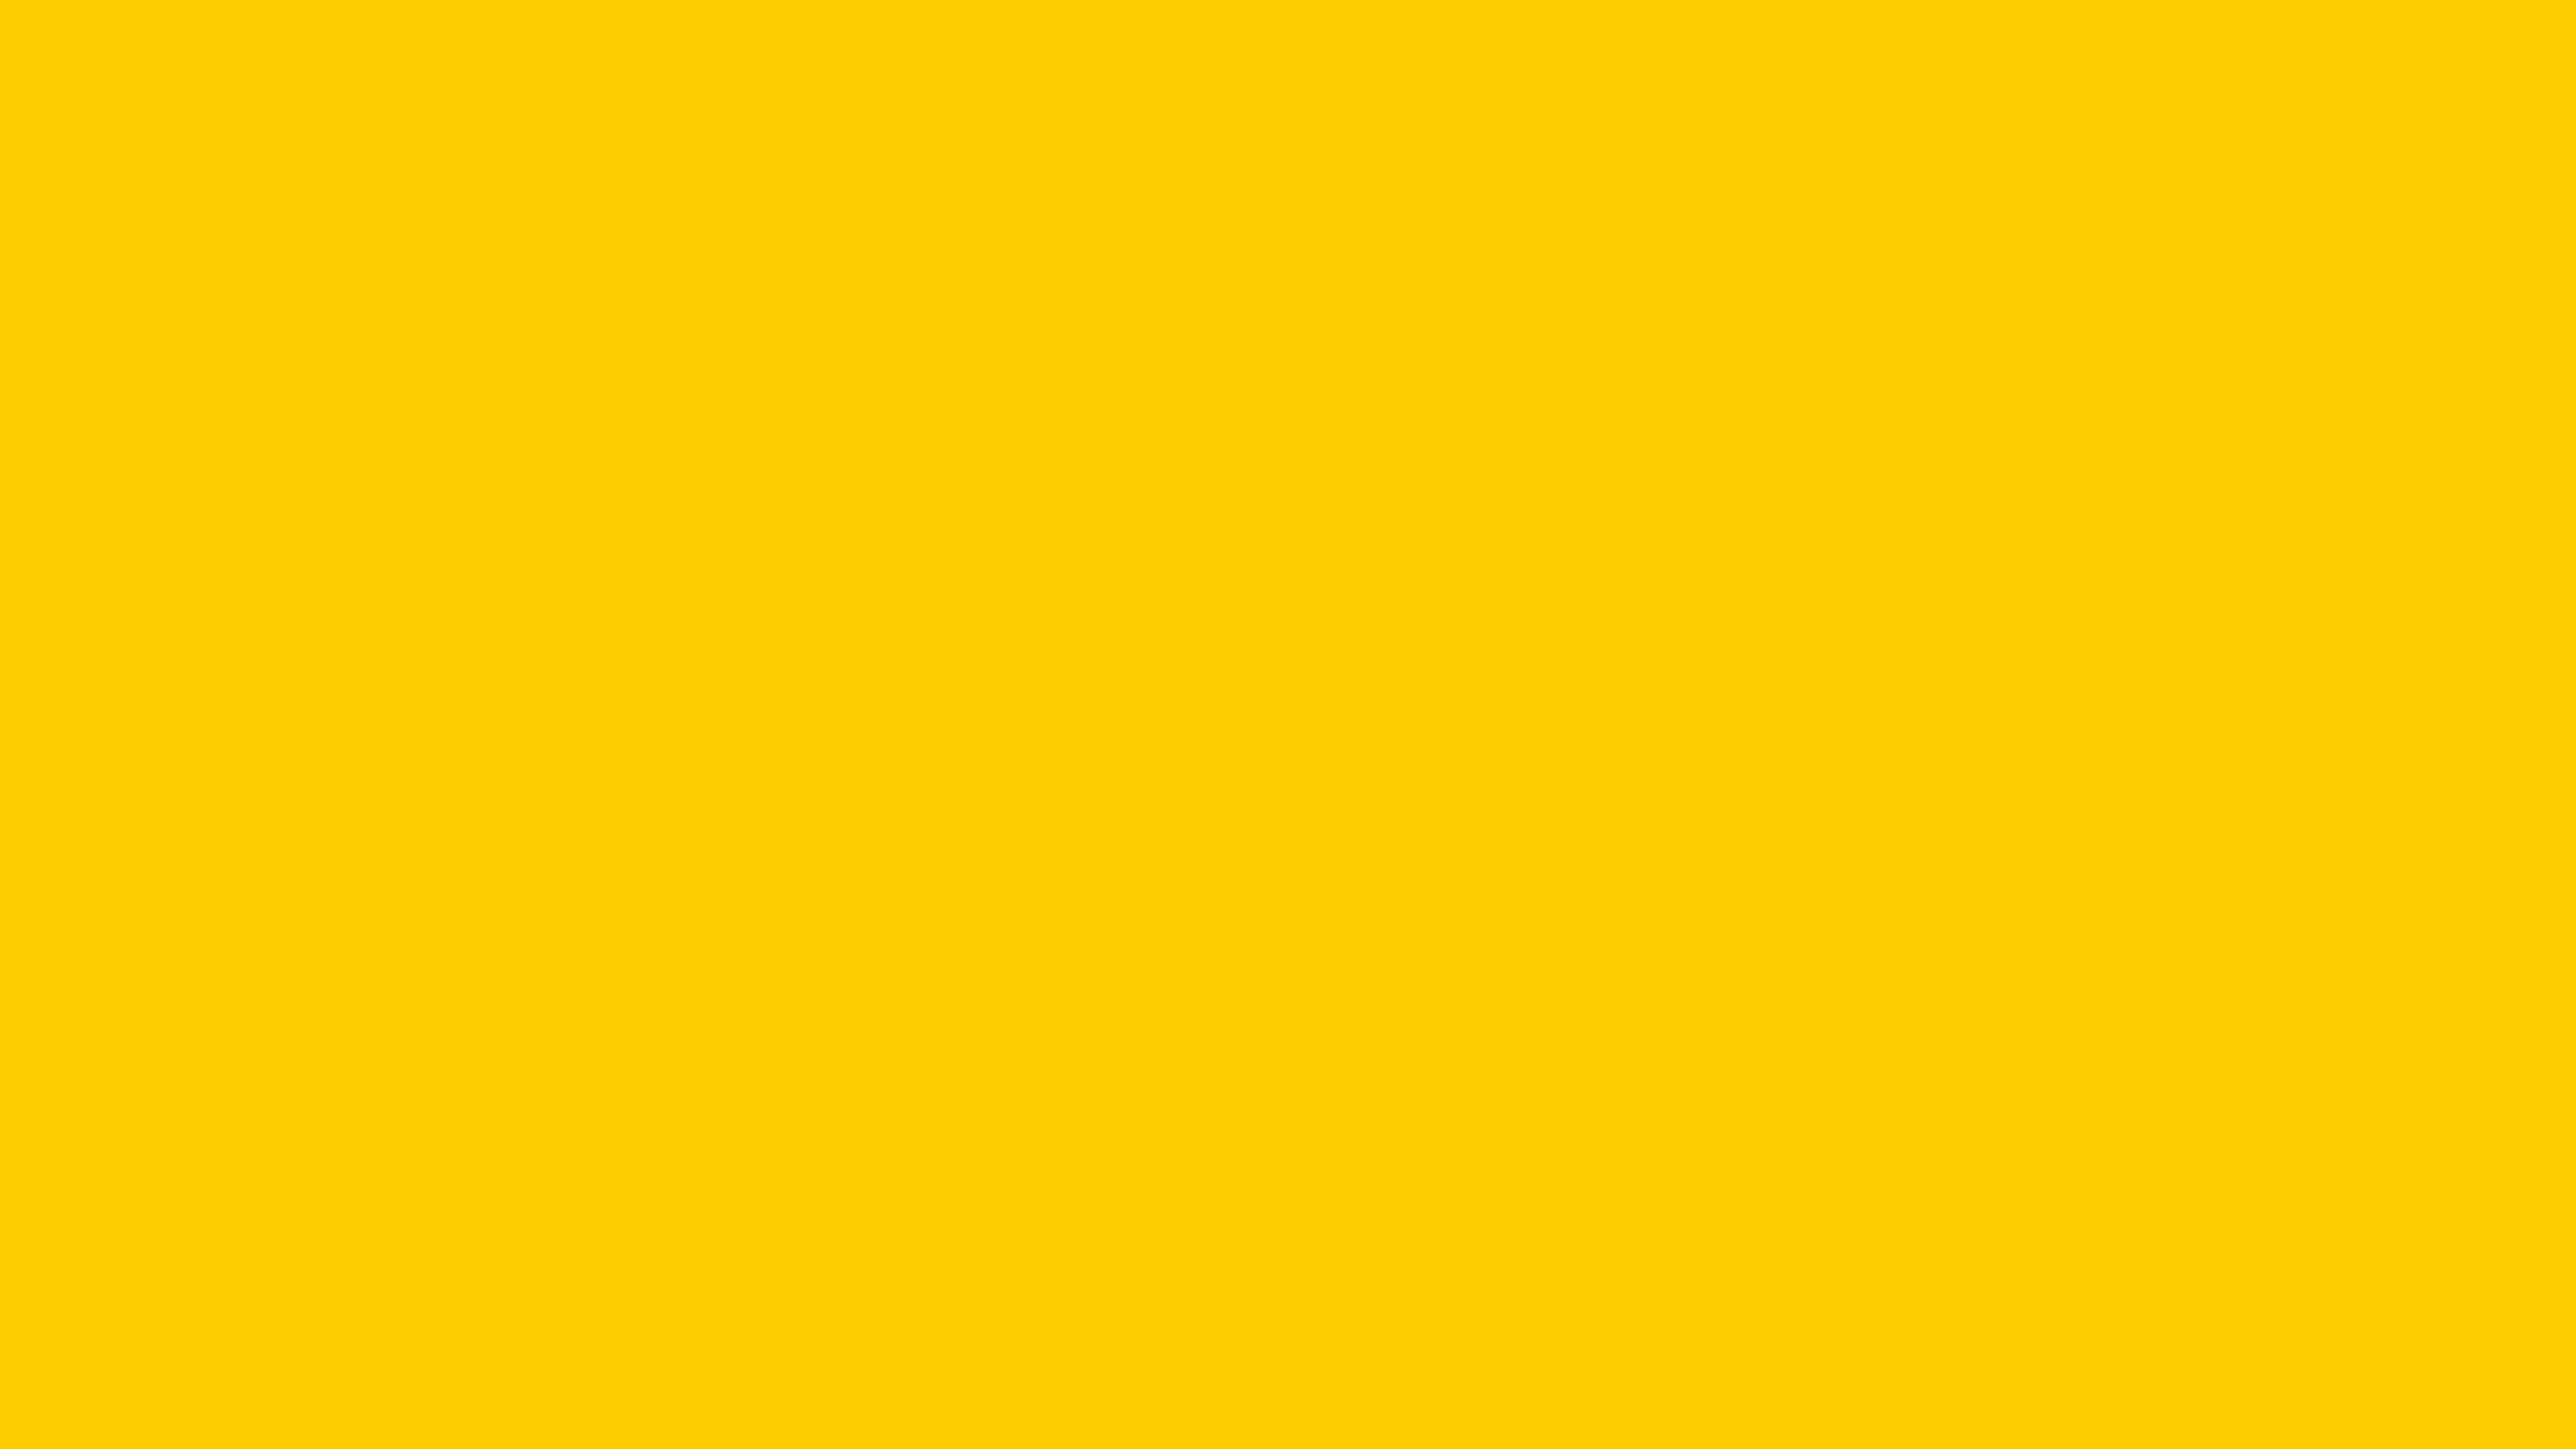 3840x2160 Tangerine Yellow Solid Color Background